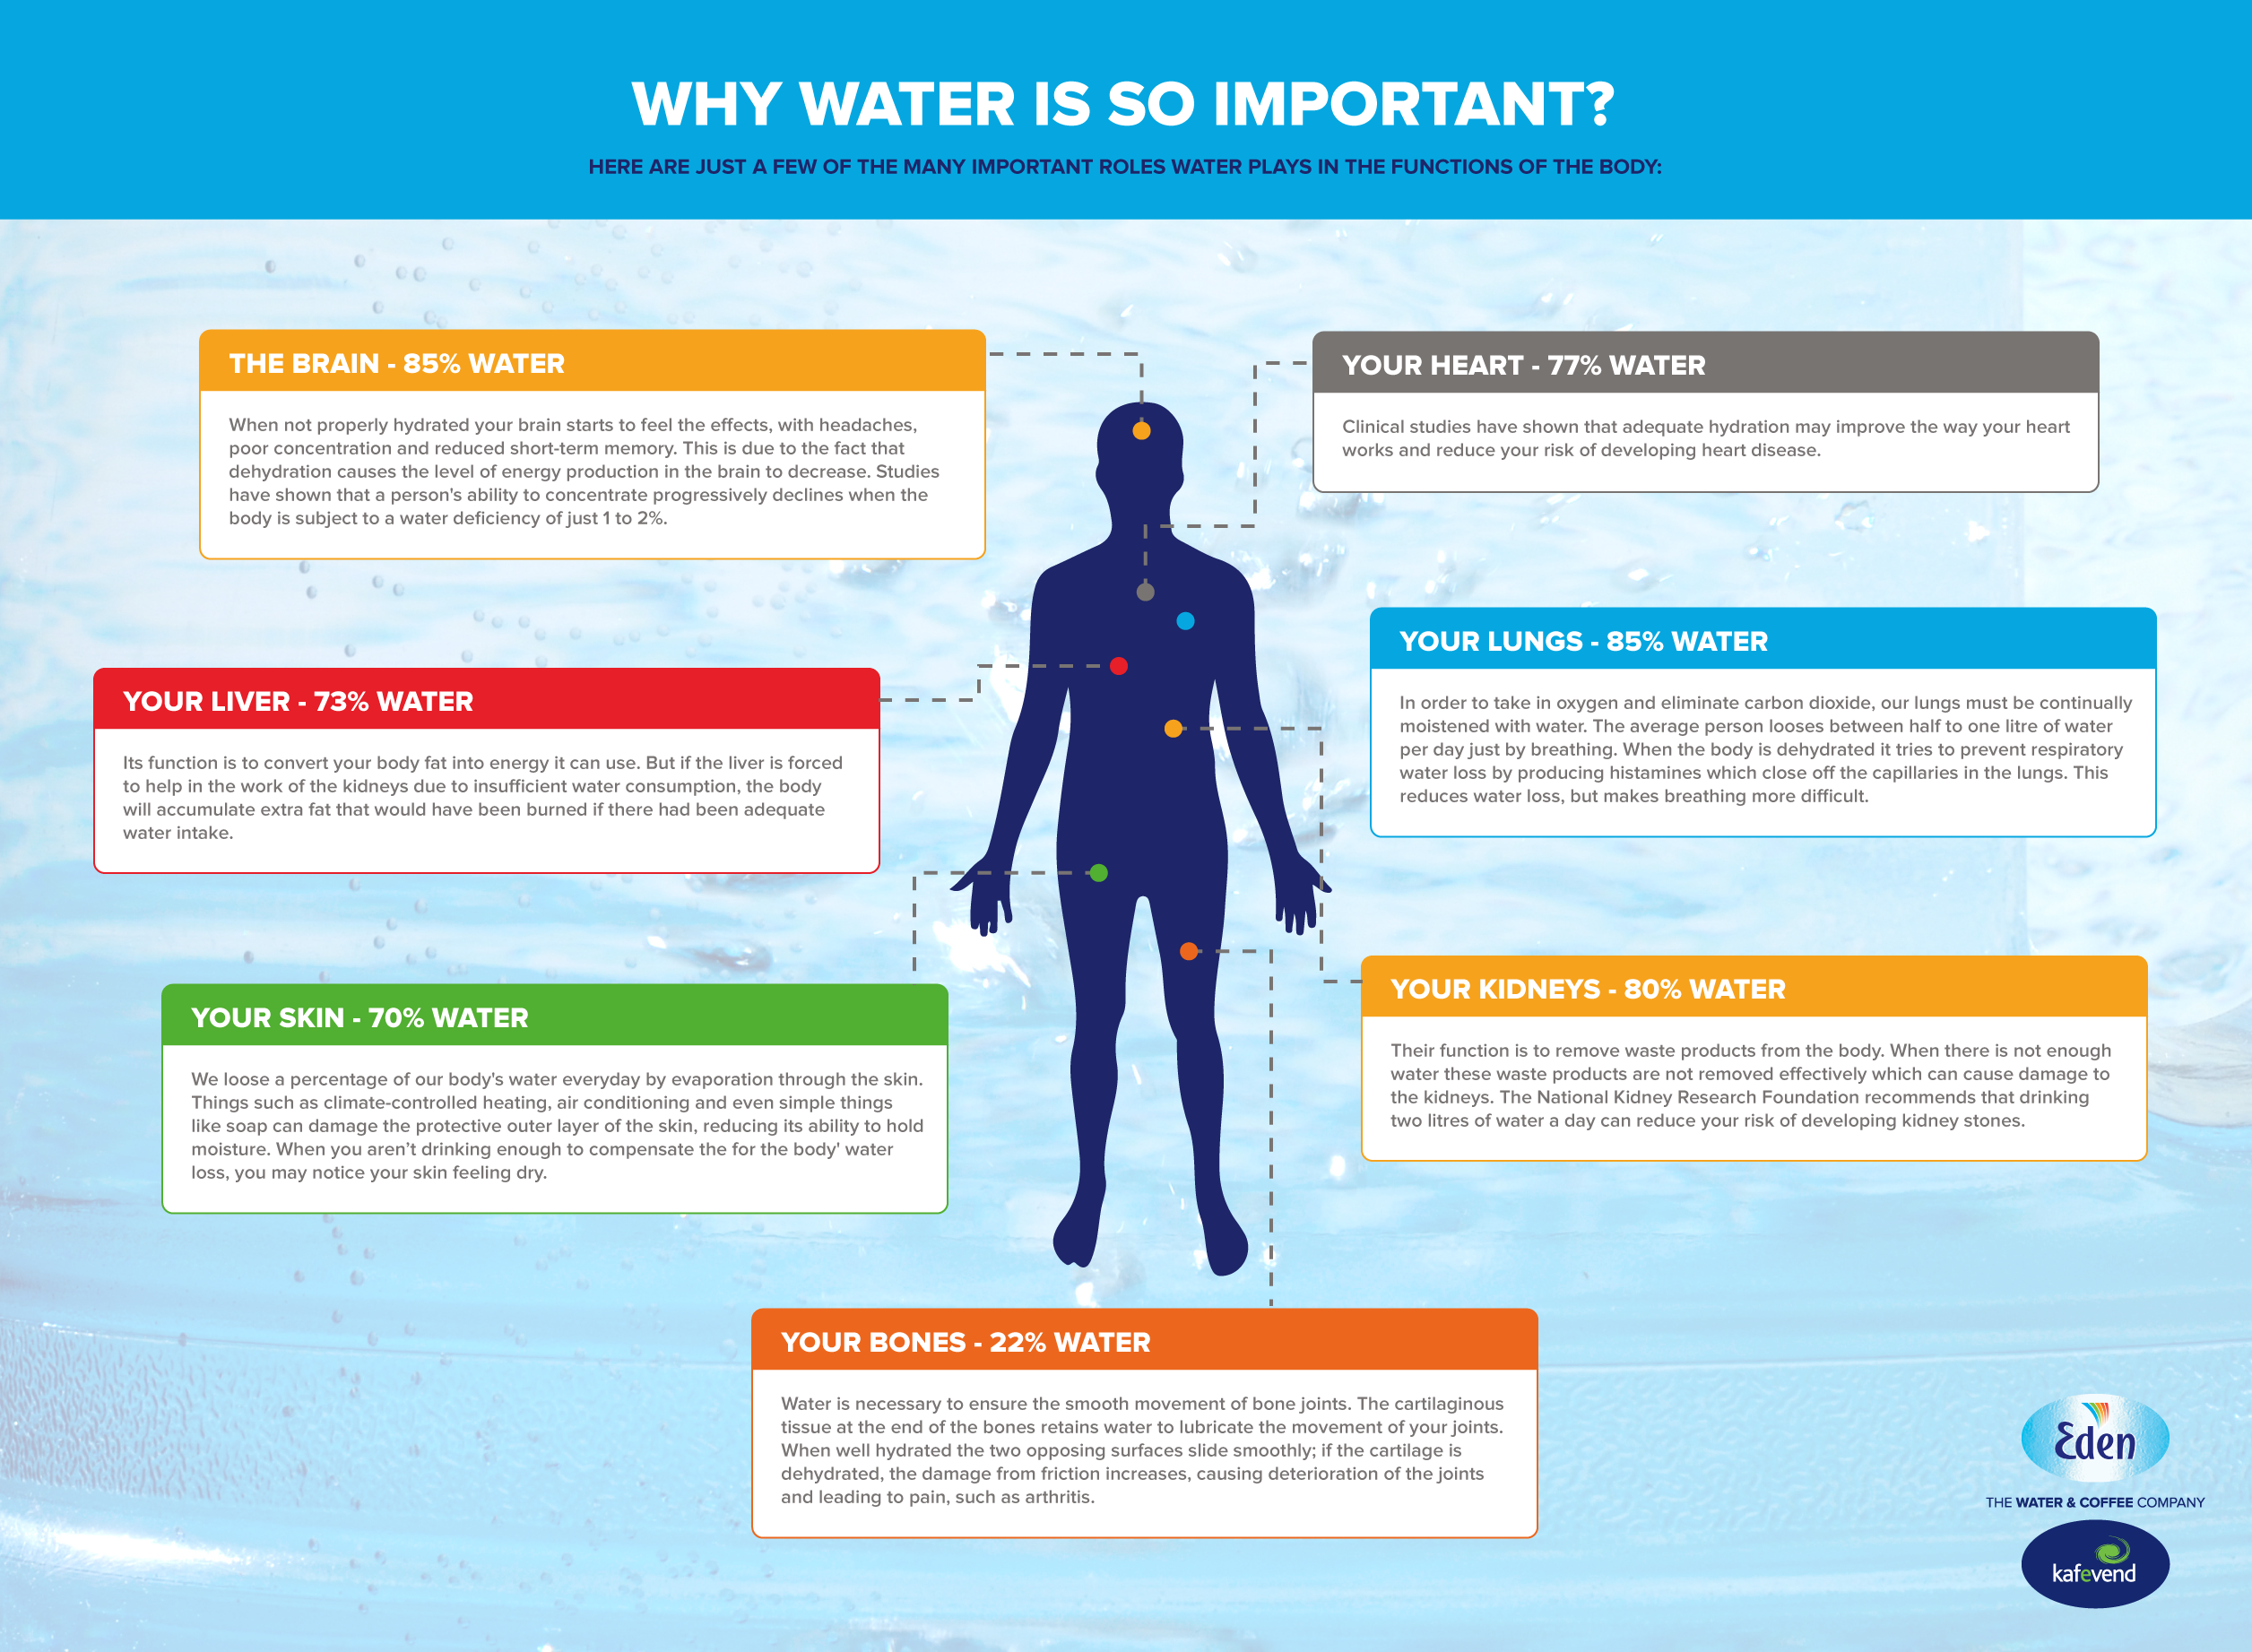 why water is so important? | eden springs